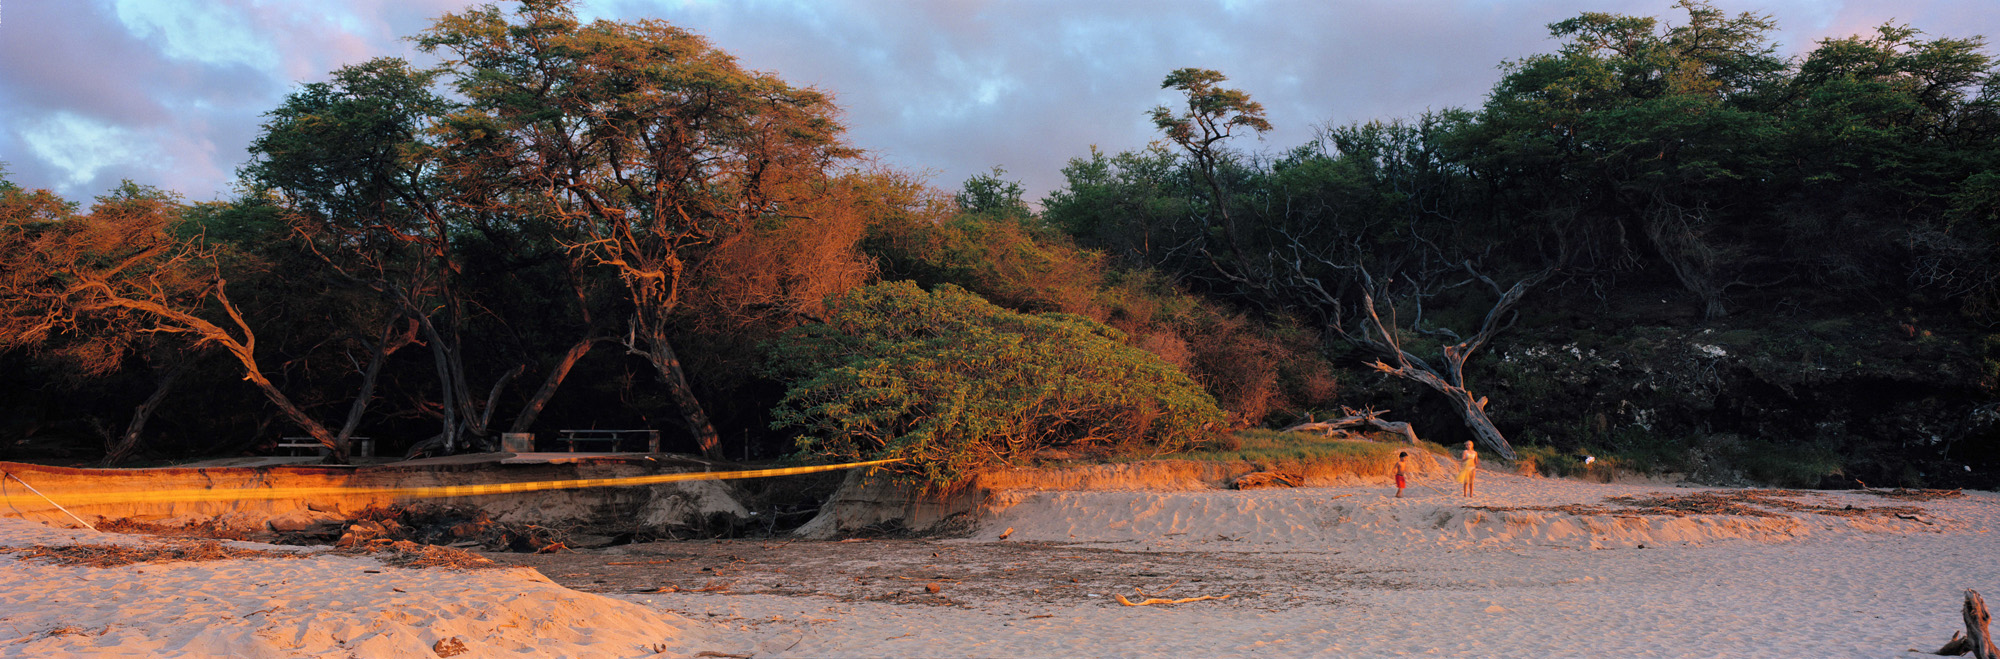 After the Flood, Hapuna Beach, Hawaii, 2008